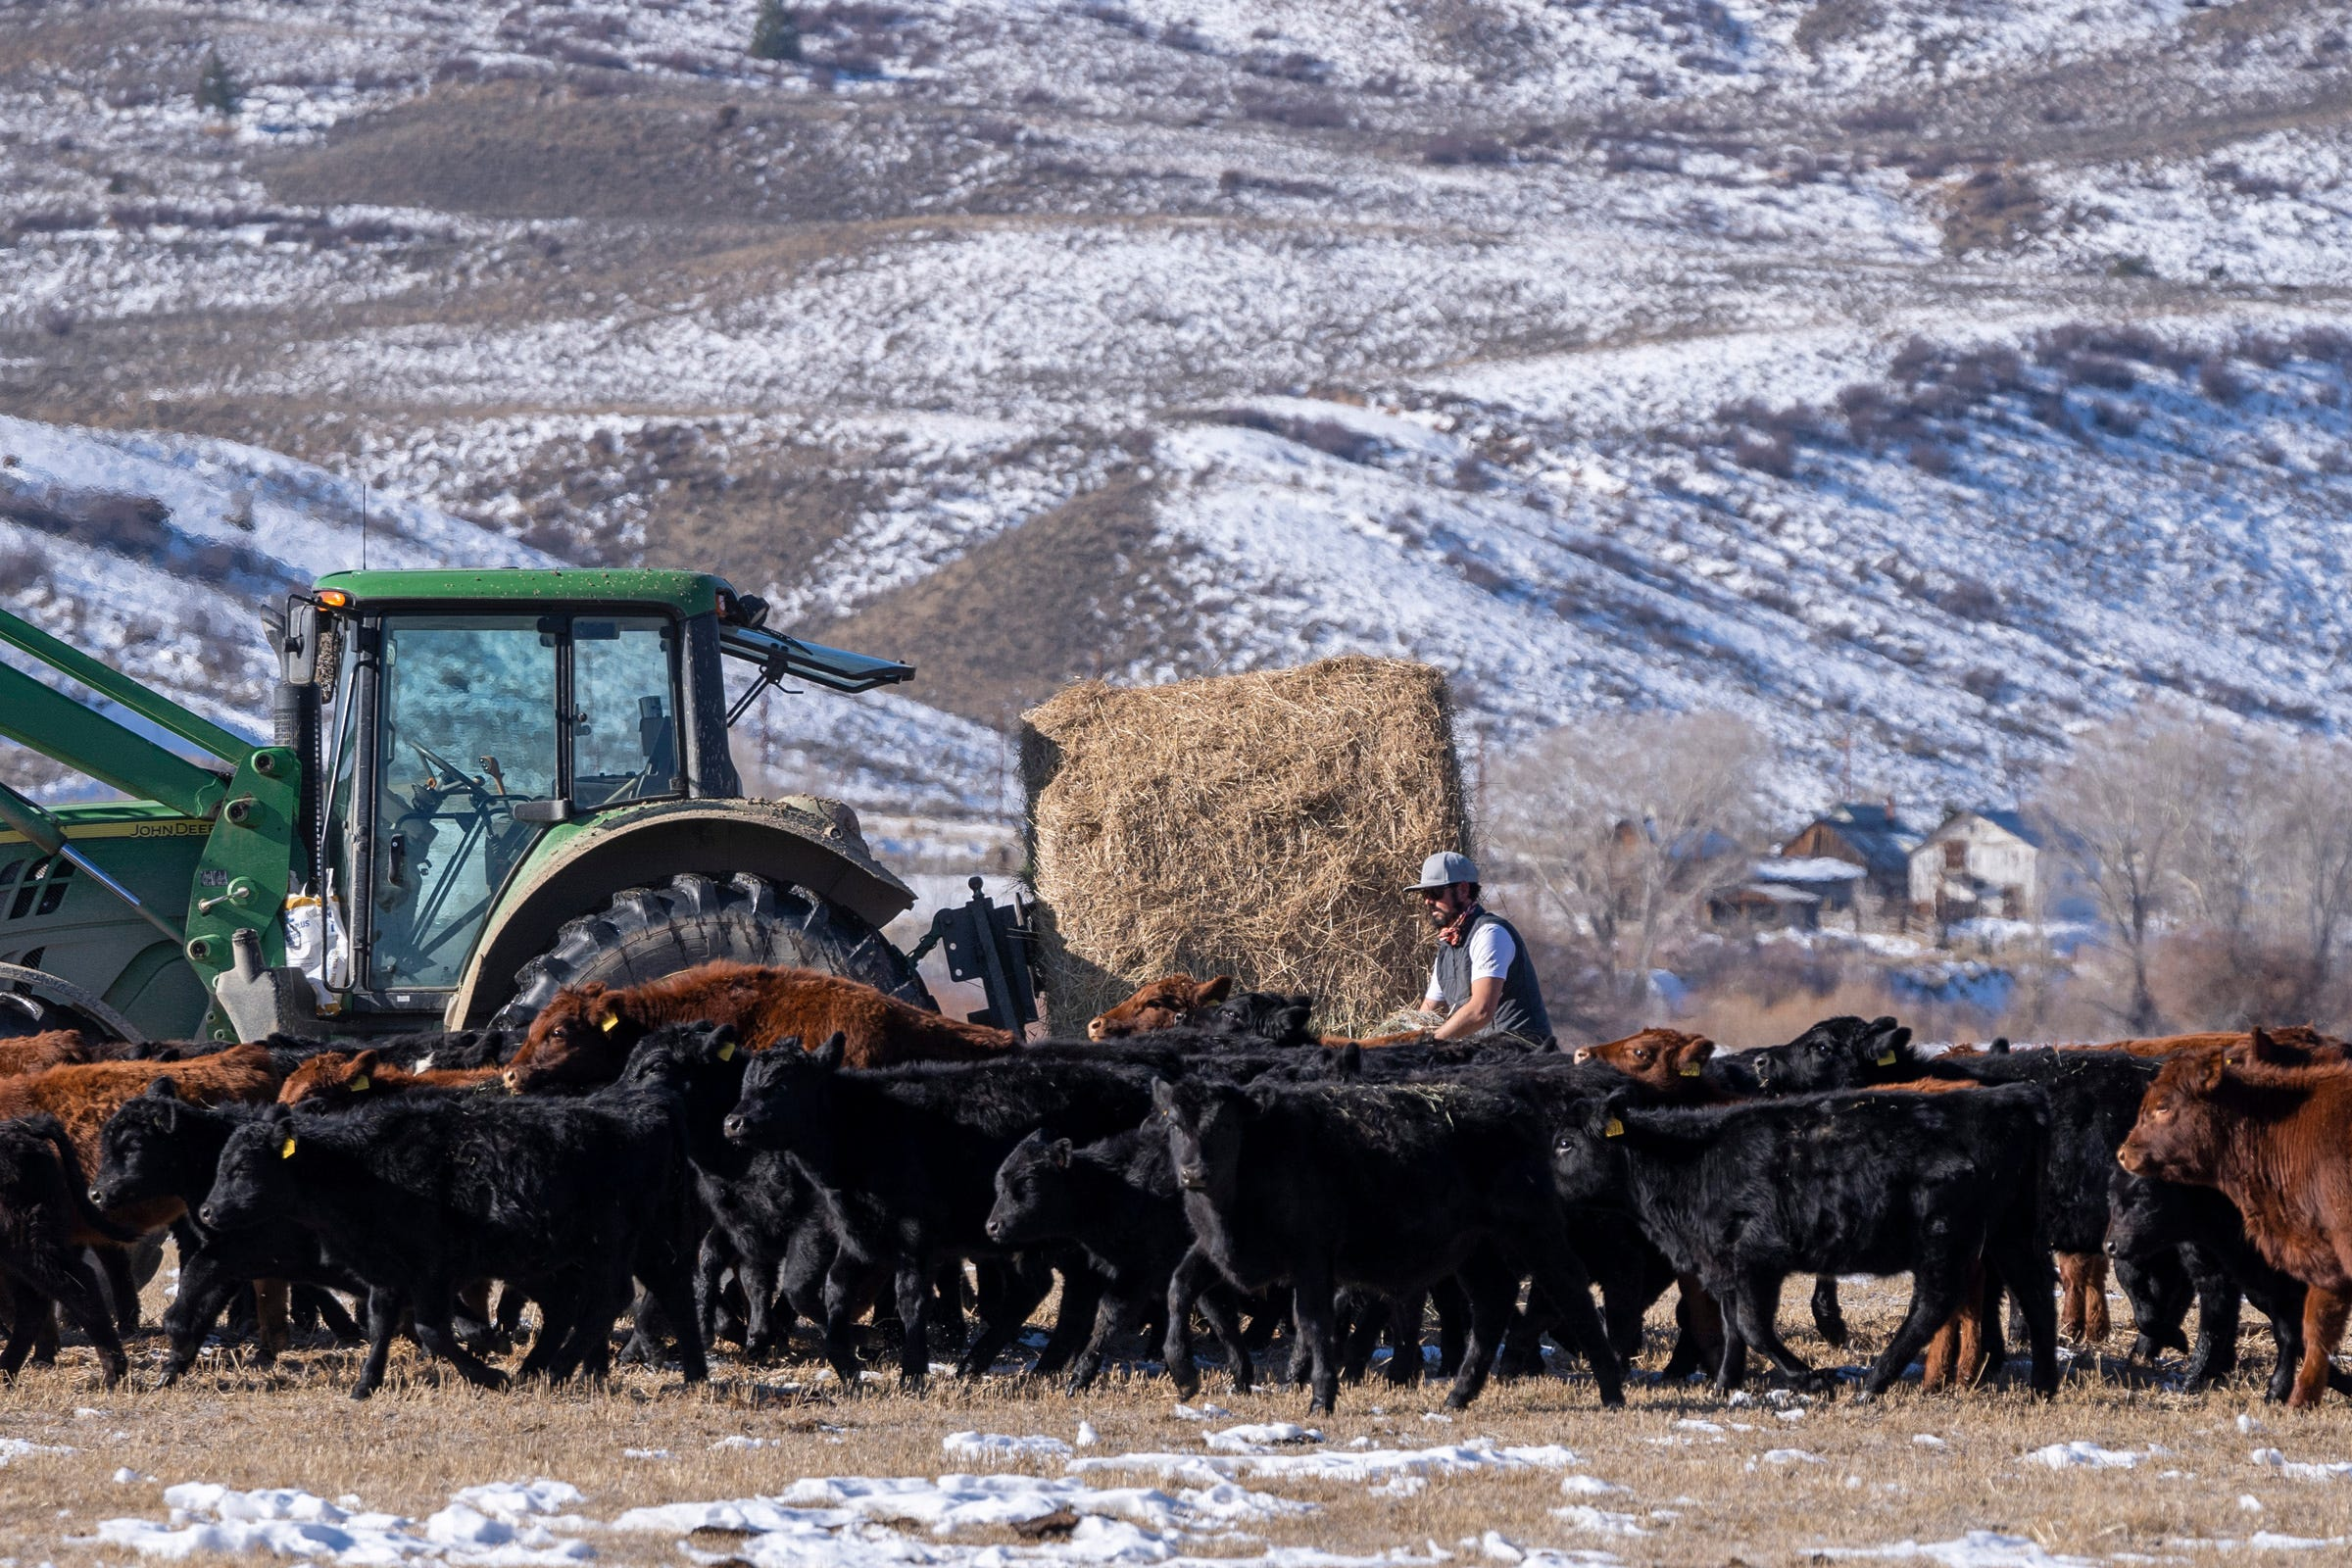 Paul Bruchez uses a tractor to feed hay to cattle on his family's ranch beside the Colorado River near Kremmling, Colorado.